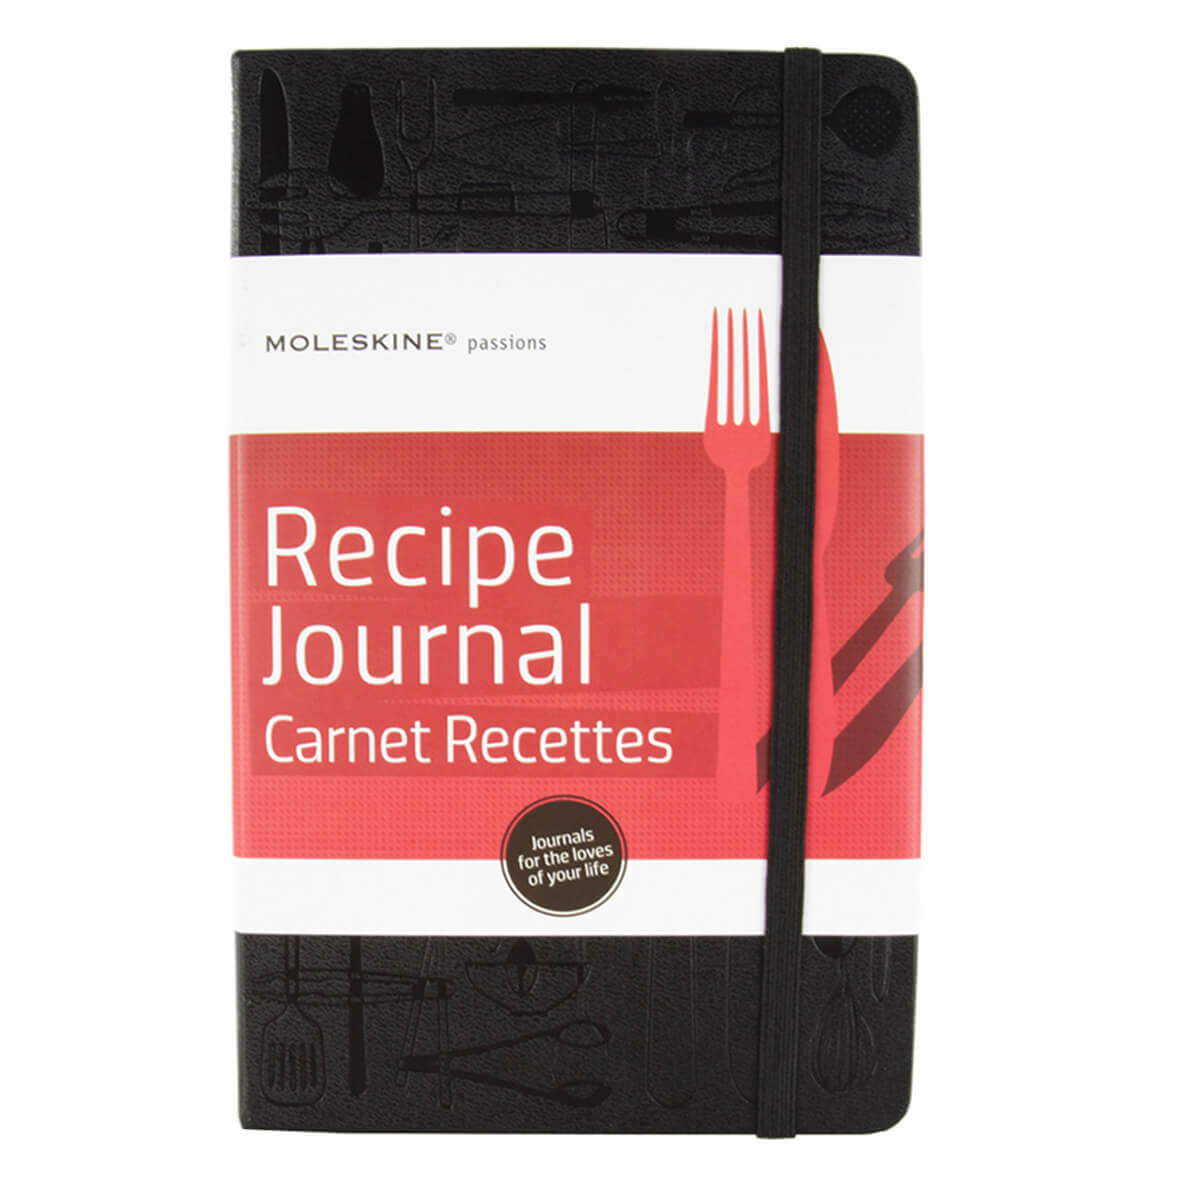 Moleskine Passion Journal - Recipe, Large, Hard Cover (5 x 8.25) (Passion Book